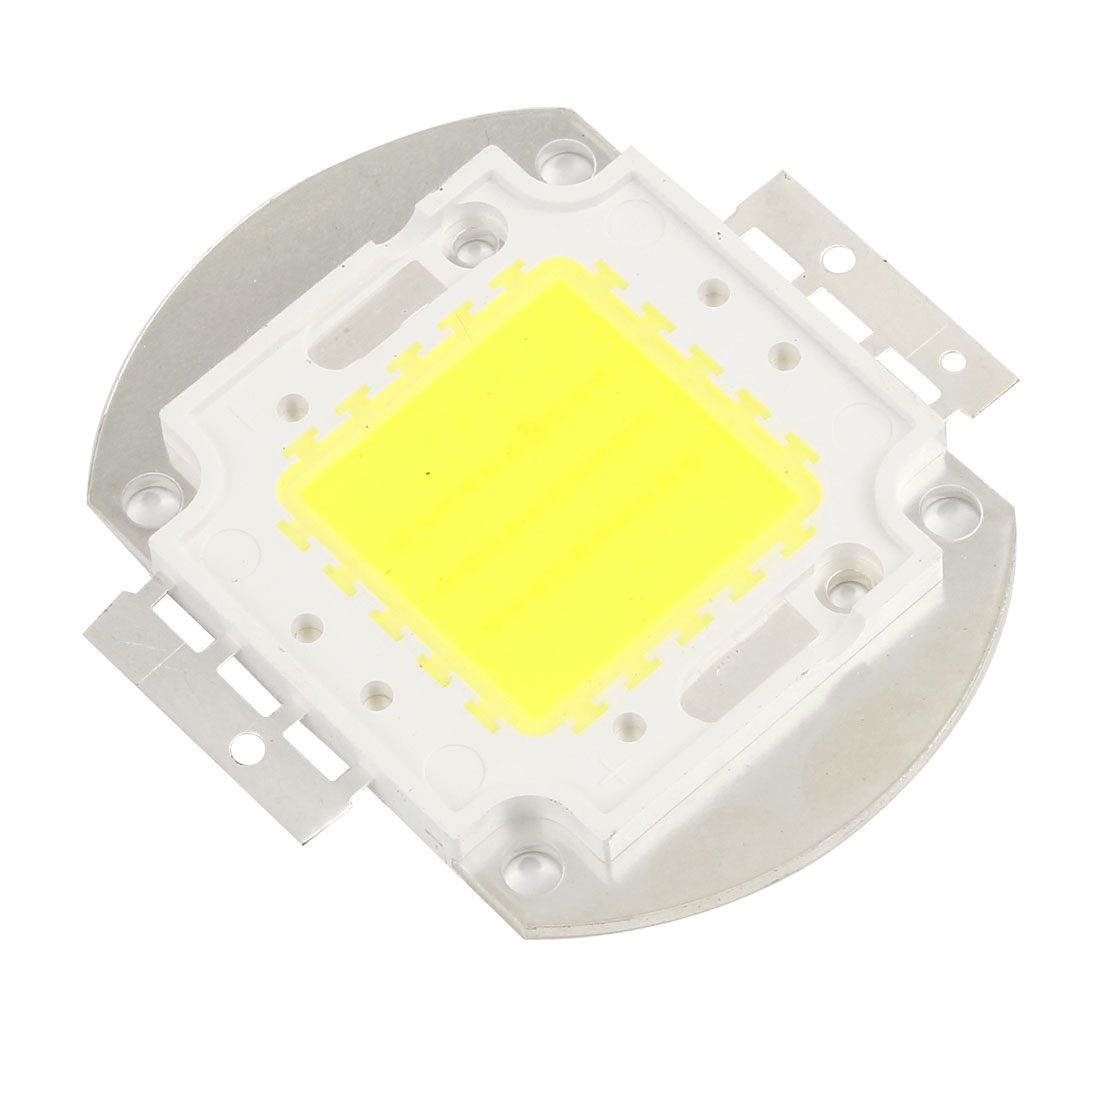 32-34V 1050mA 30W Pure White Light High Power SMD LED Chip Lamp Bulb